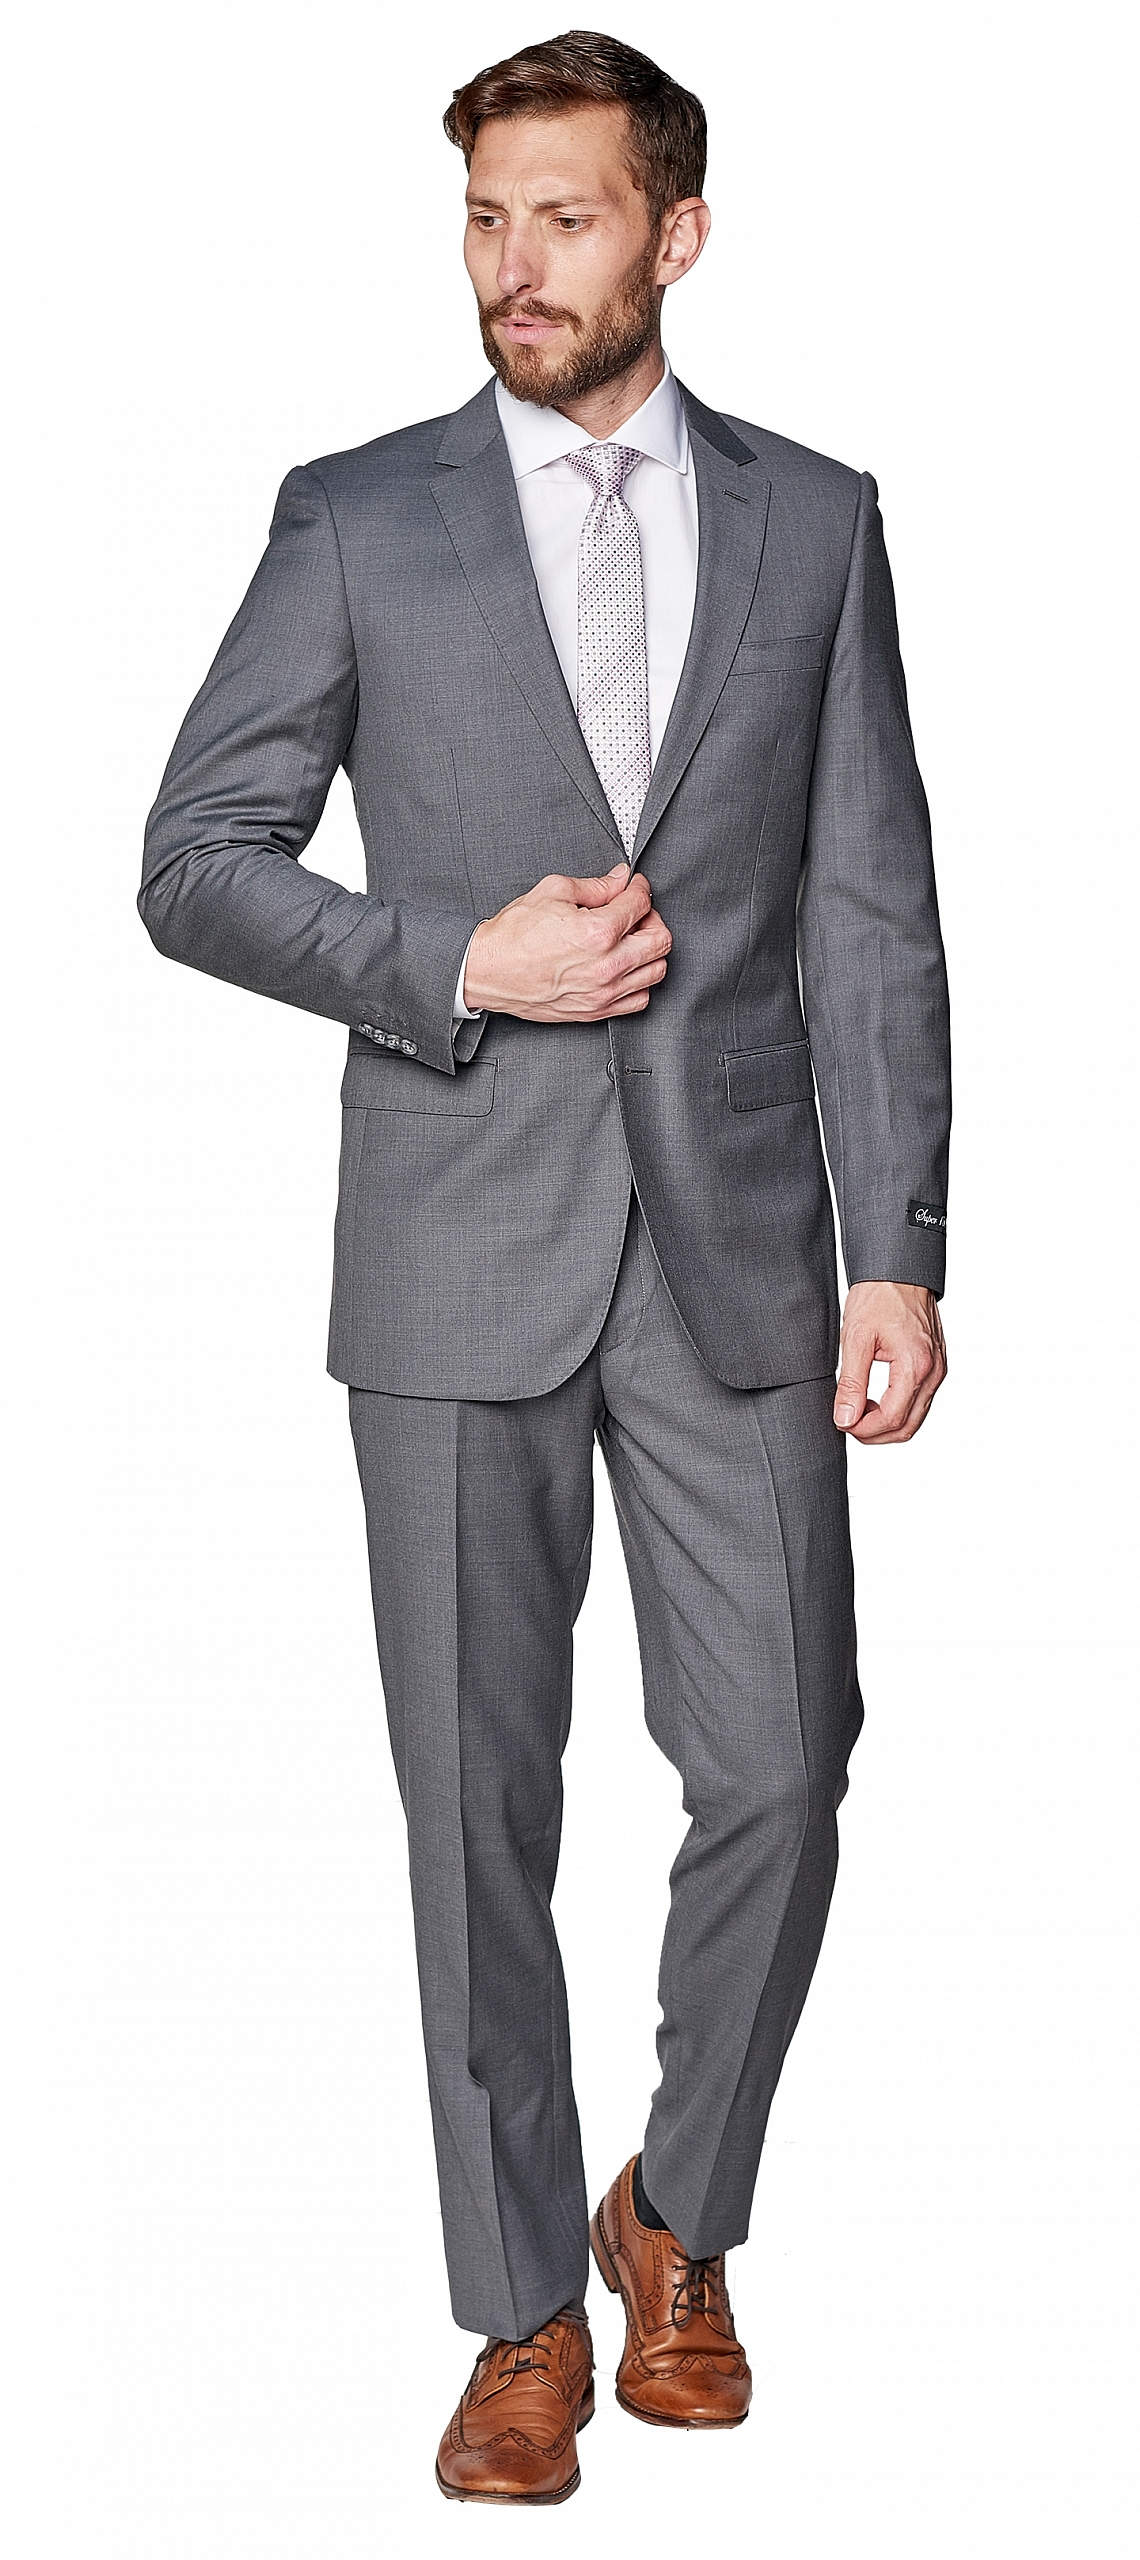 Giovanni Bresciani Medium Grey Suit